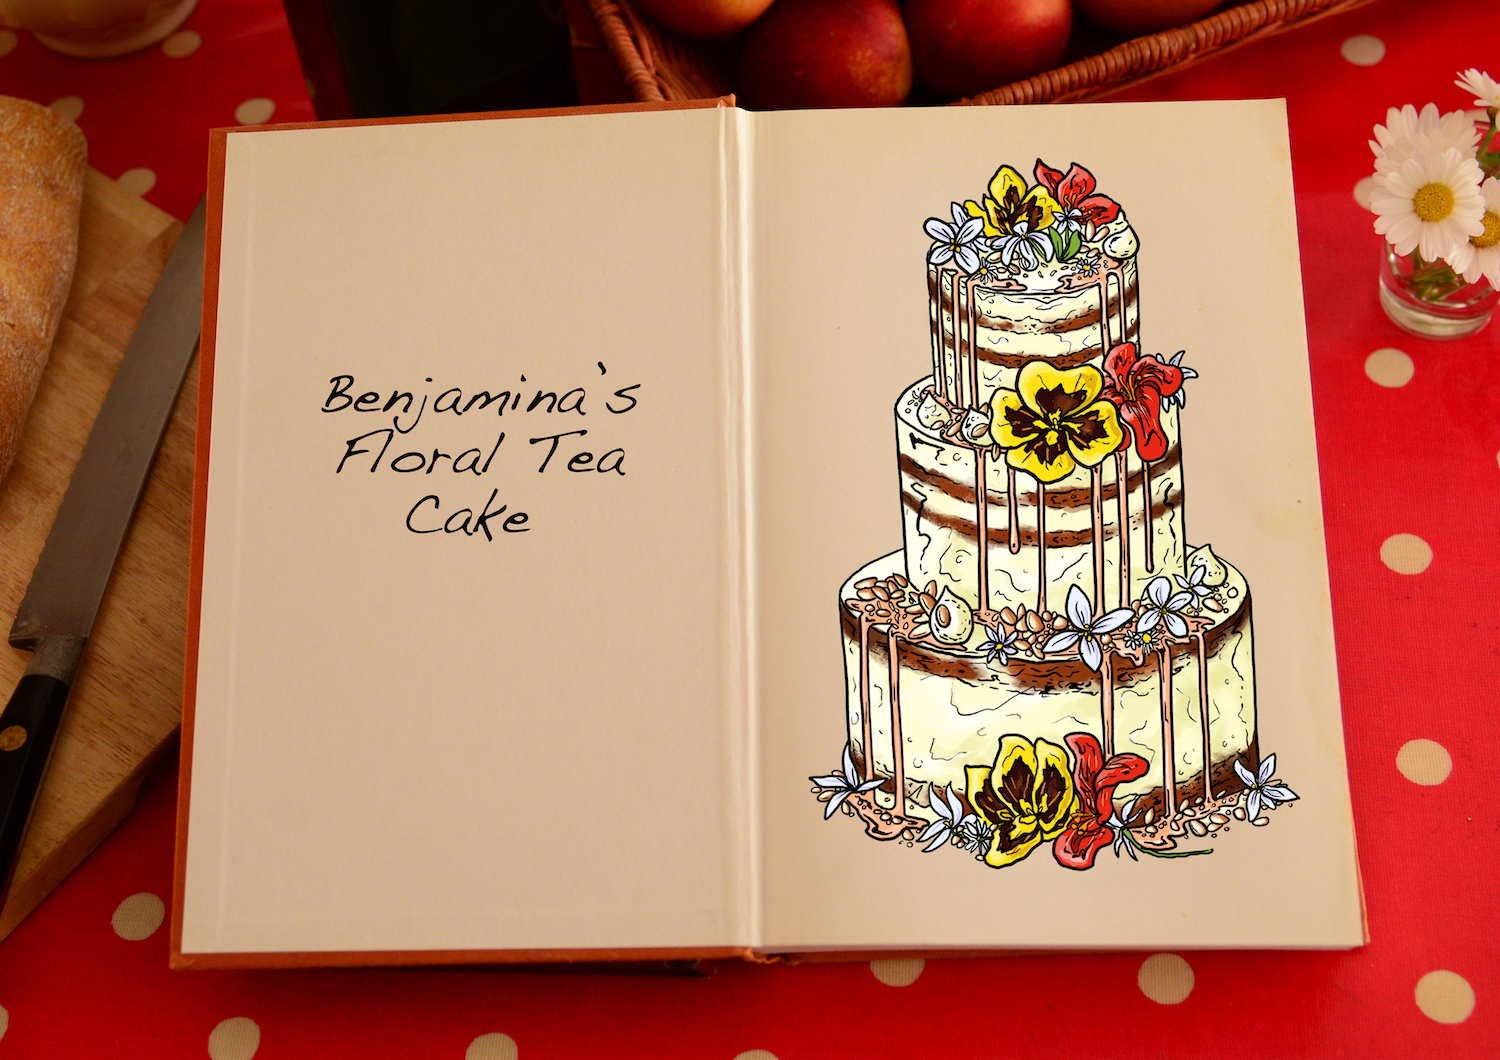 Tom Hovey, Benjamina's Floral Tea Cake, Great British Bake Off Series 7